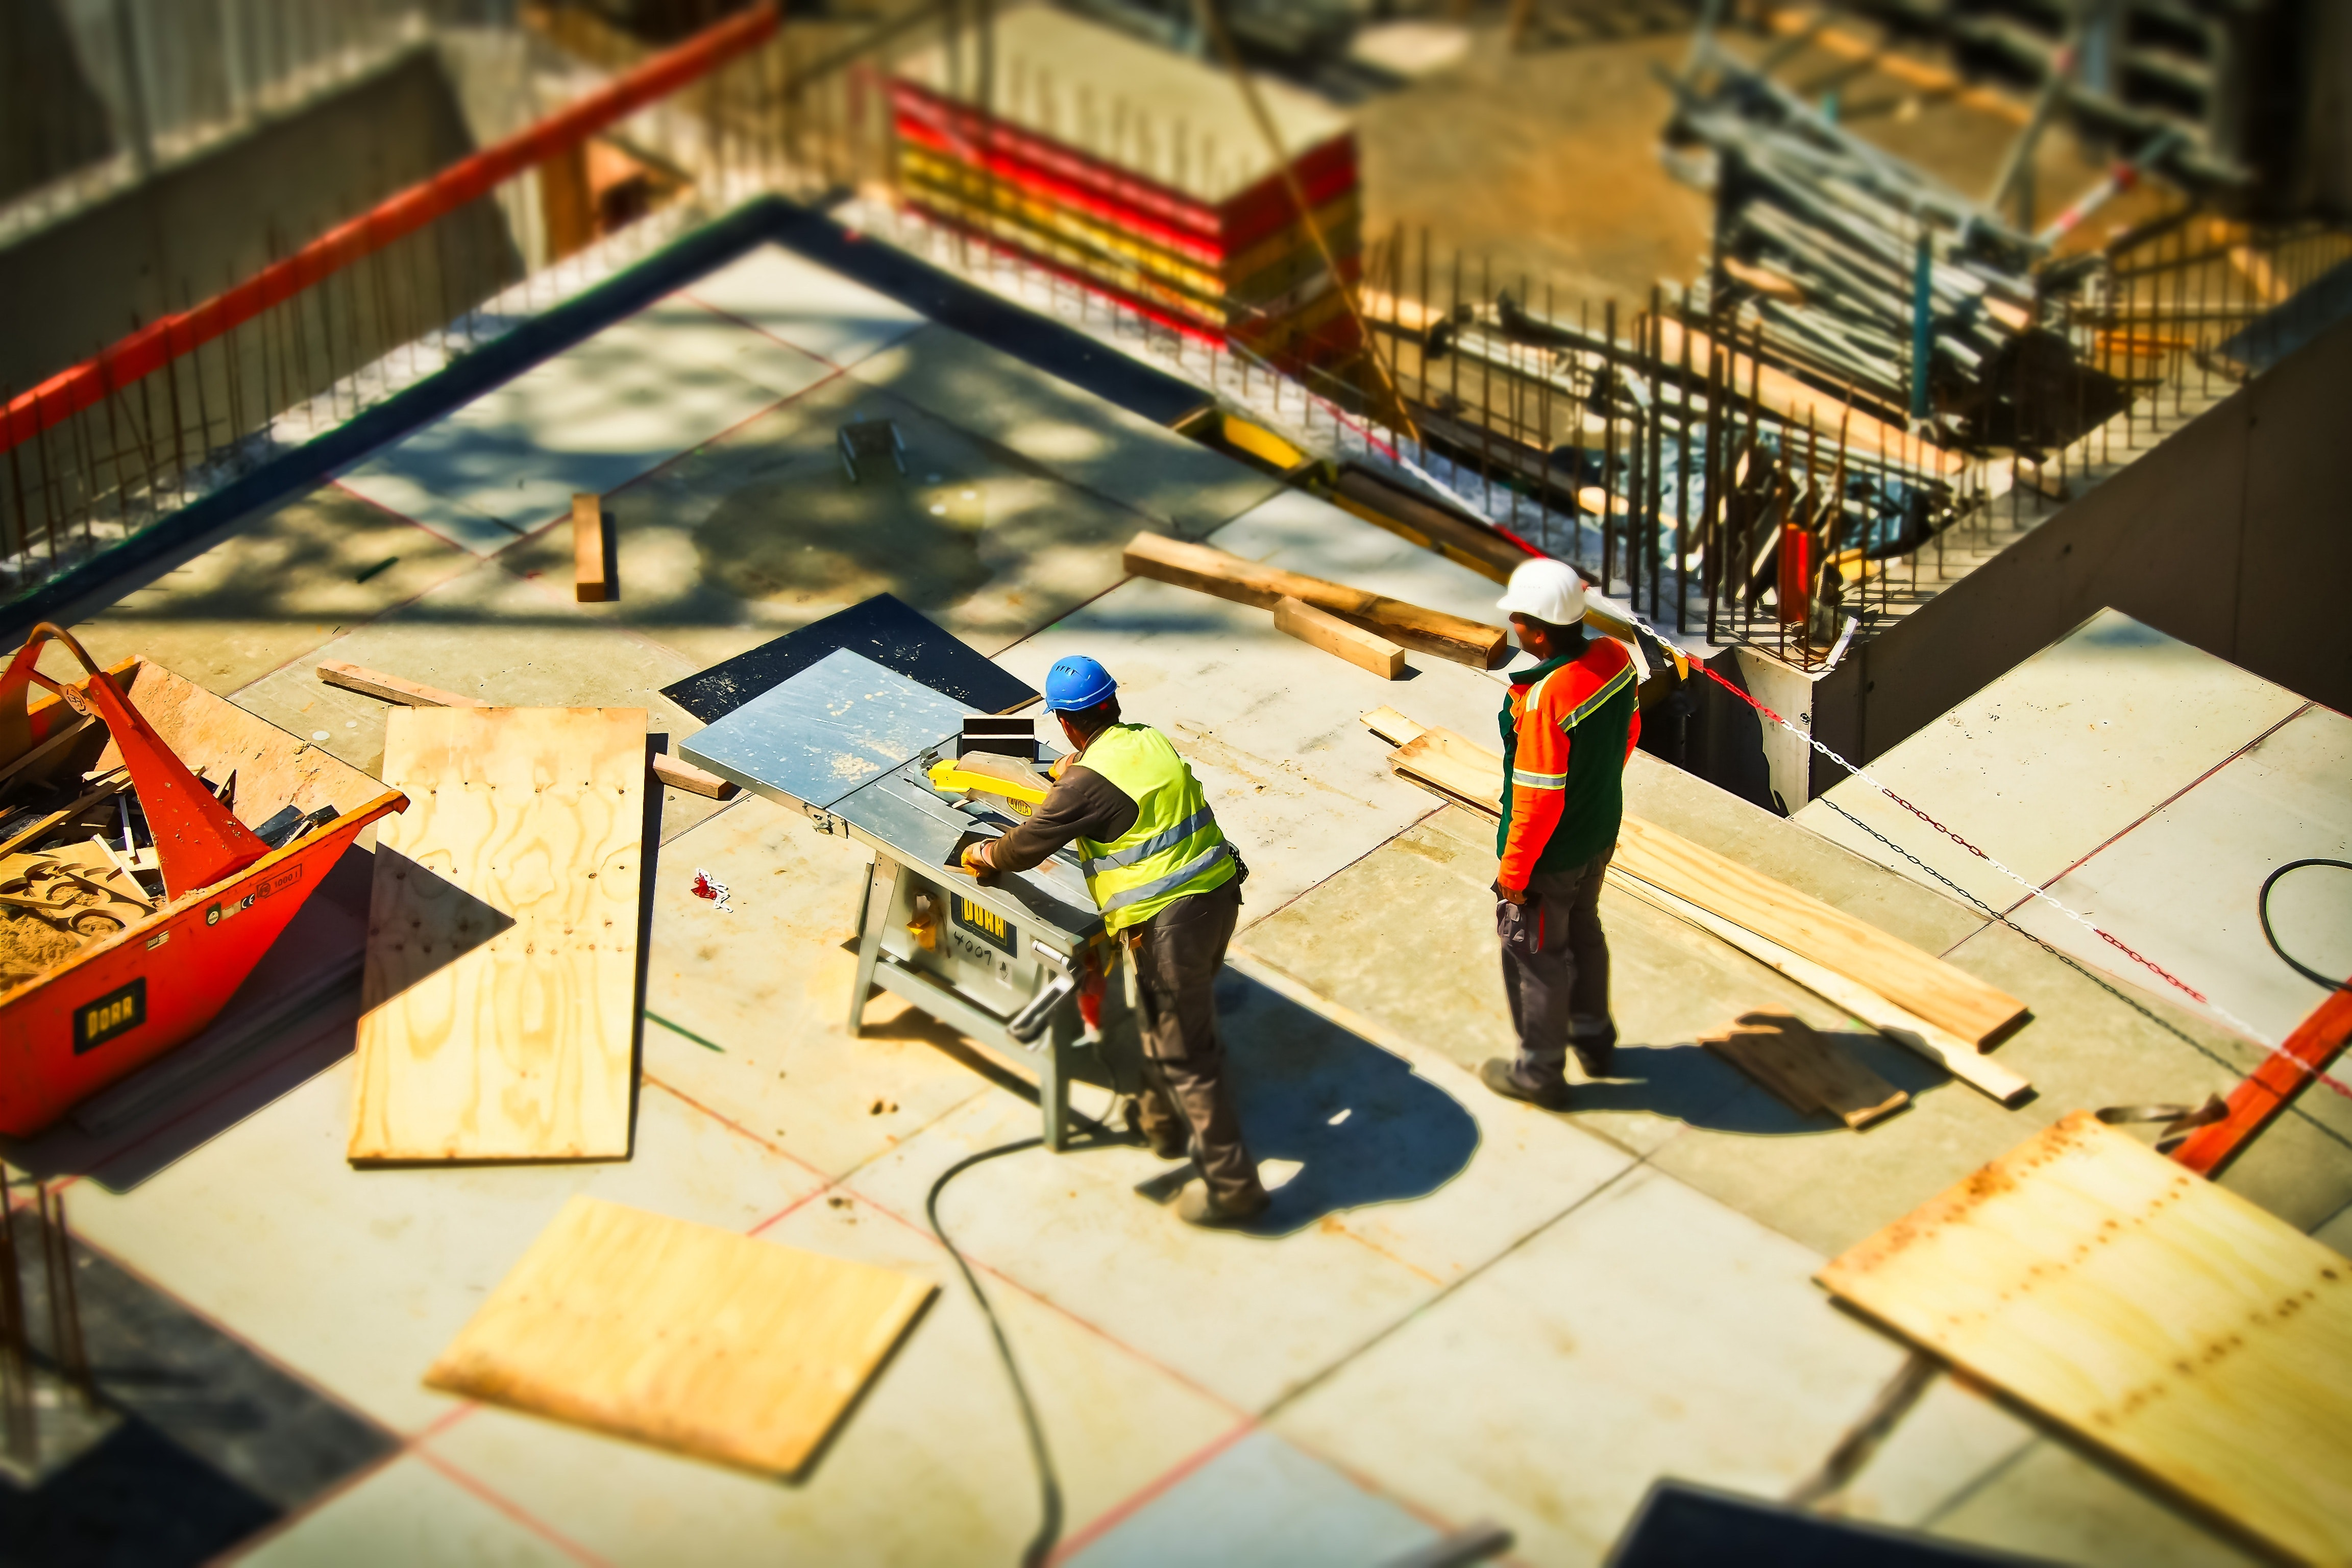 How to improve Occupational Health in the Construction industry through Technology